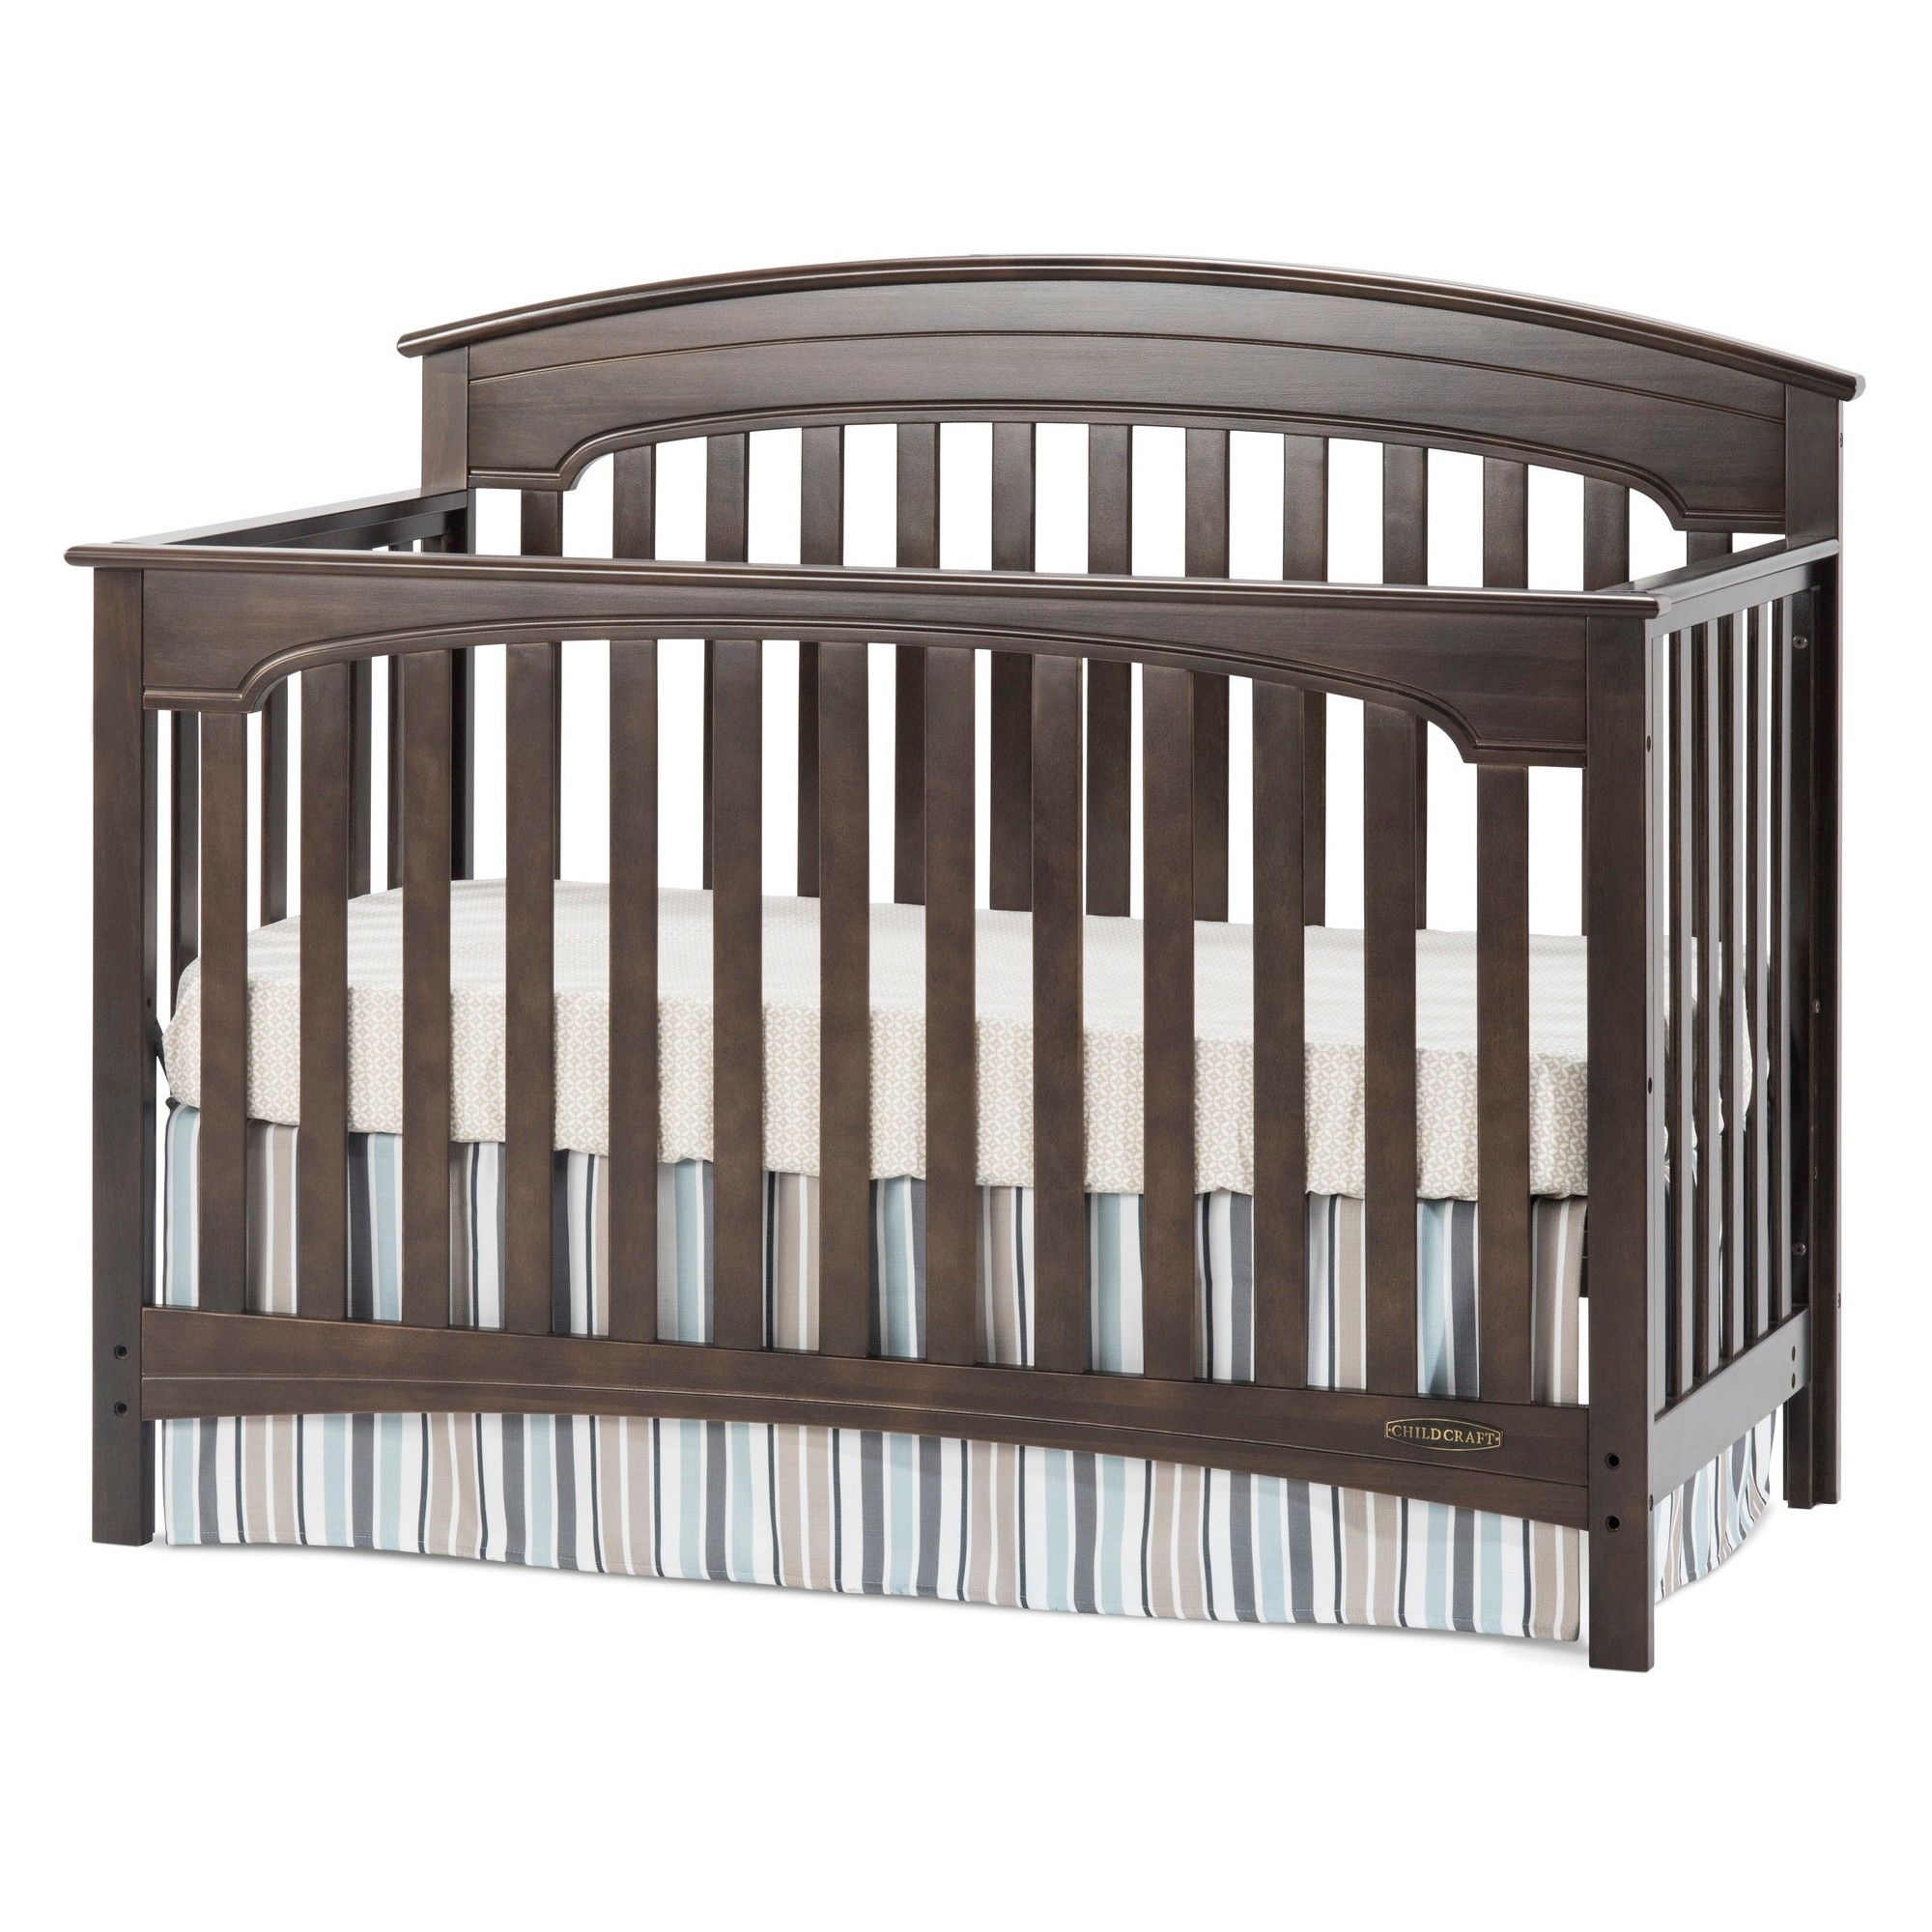 toddler childcraft cribs in for kayden traditional amazoncom bambi craft child slate rail logo crib and convertible guard bed camden